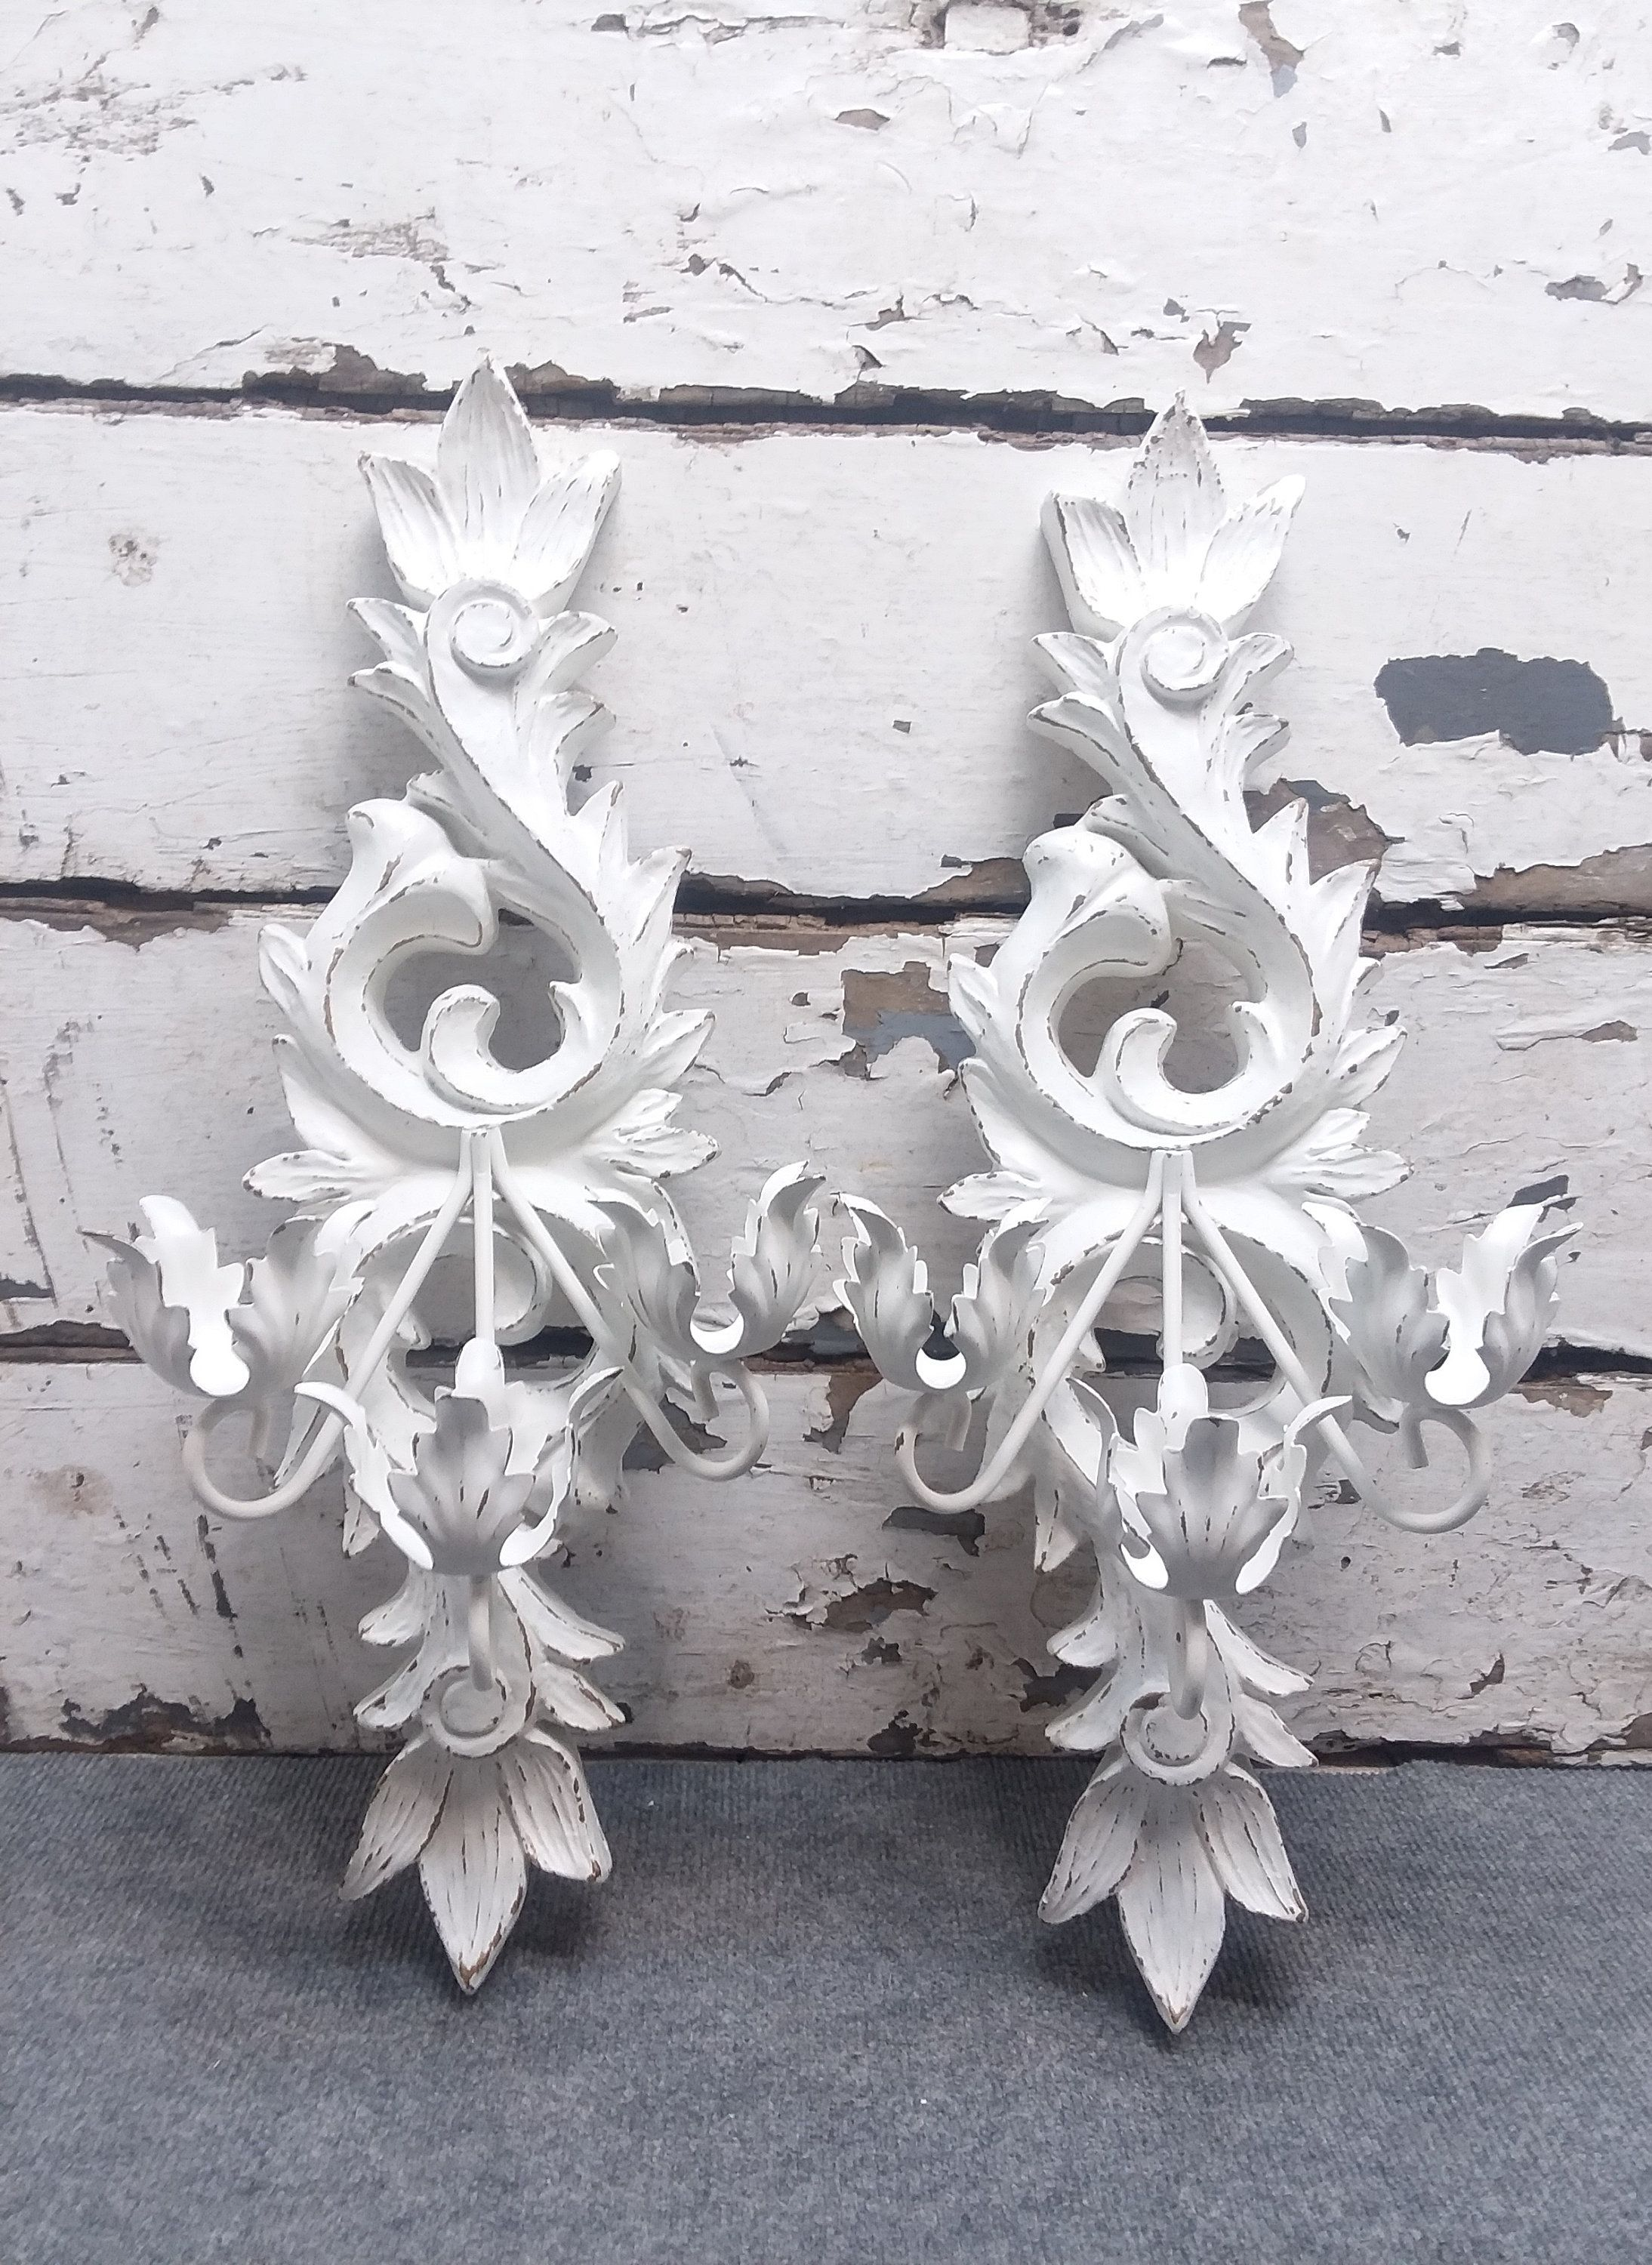 Large Shabby Chic Vintage Ornate Candle Wall Sconces Painted Etsy Shabby Chic Candle Shabby Chic Candle Sconces Wall Candles